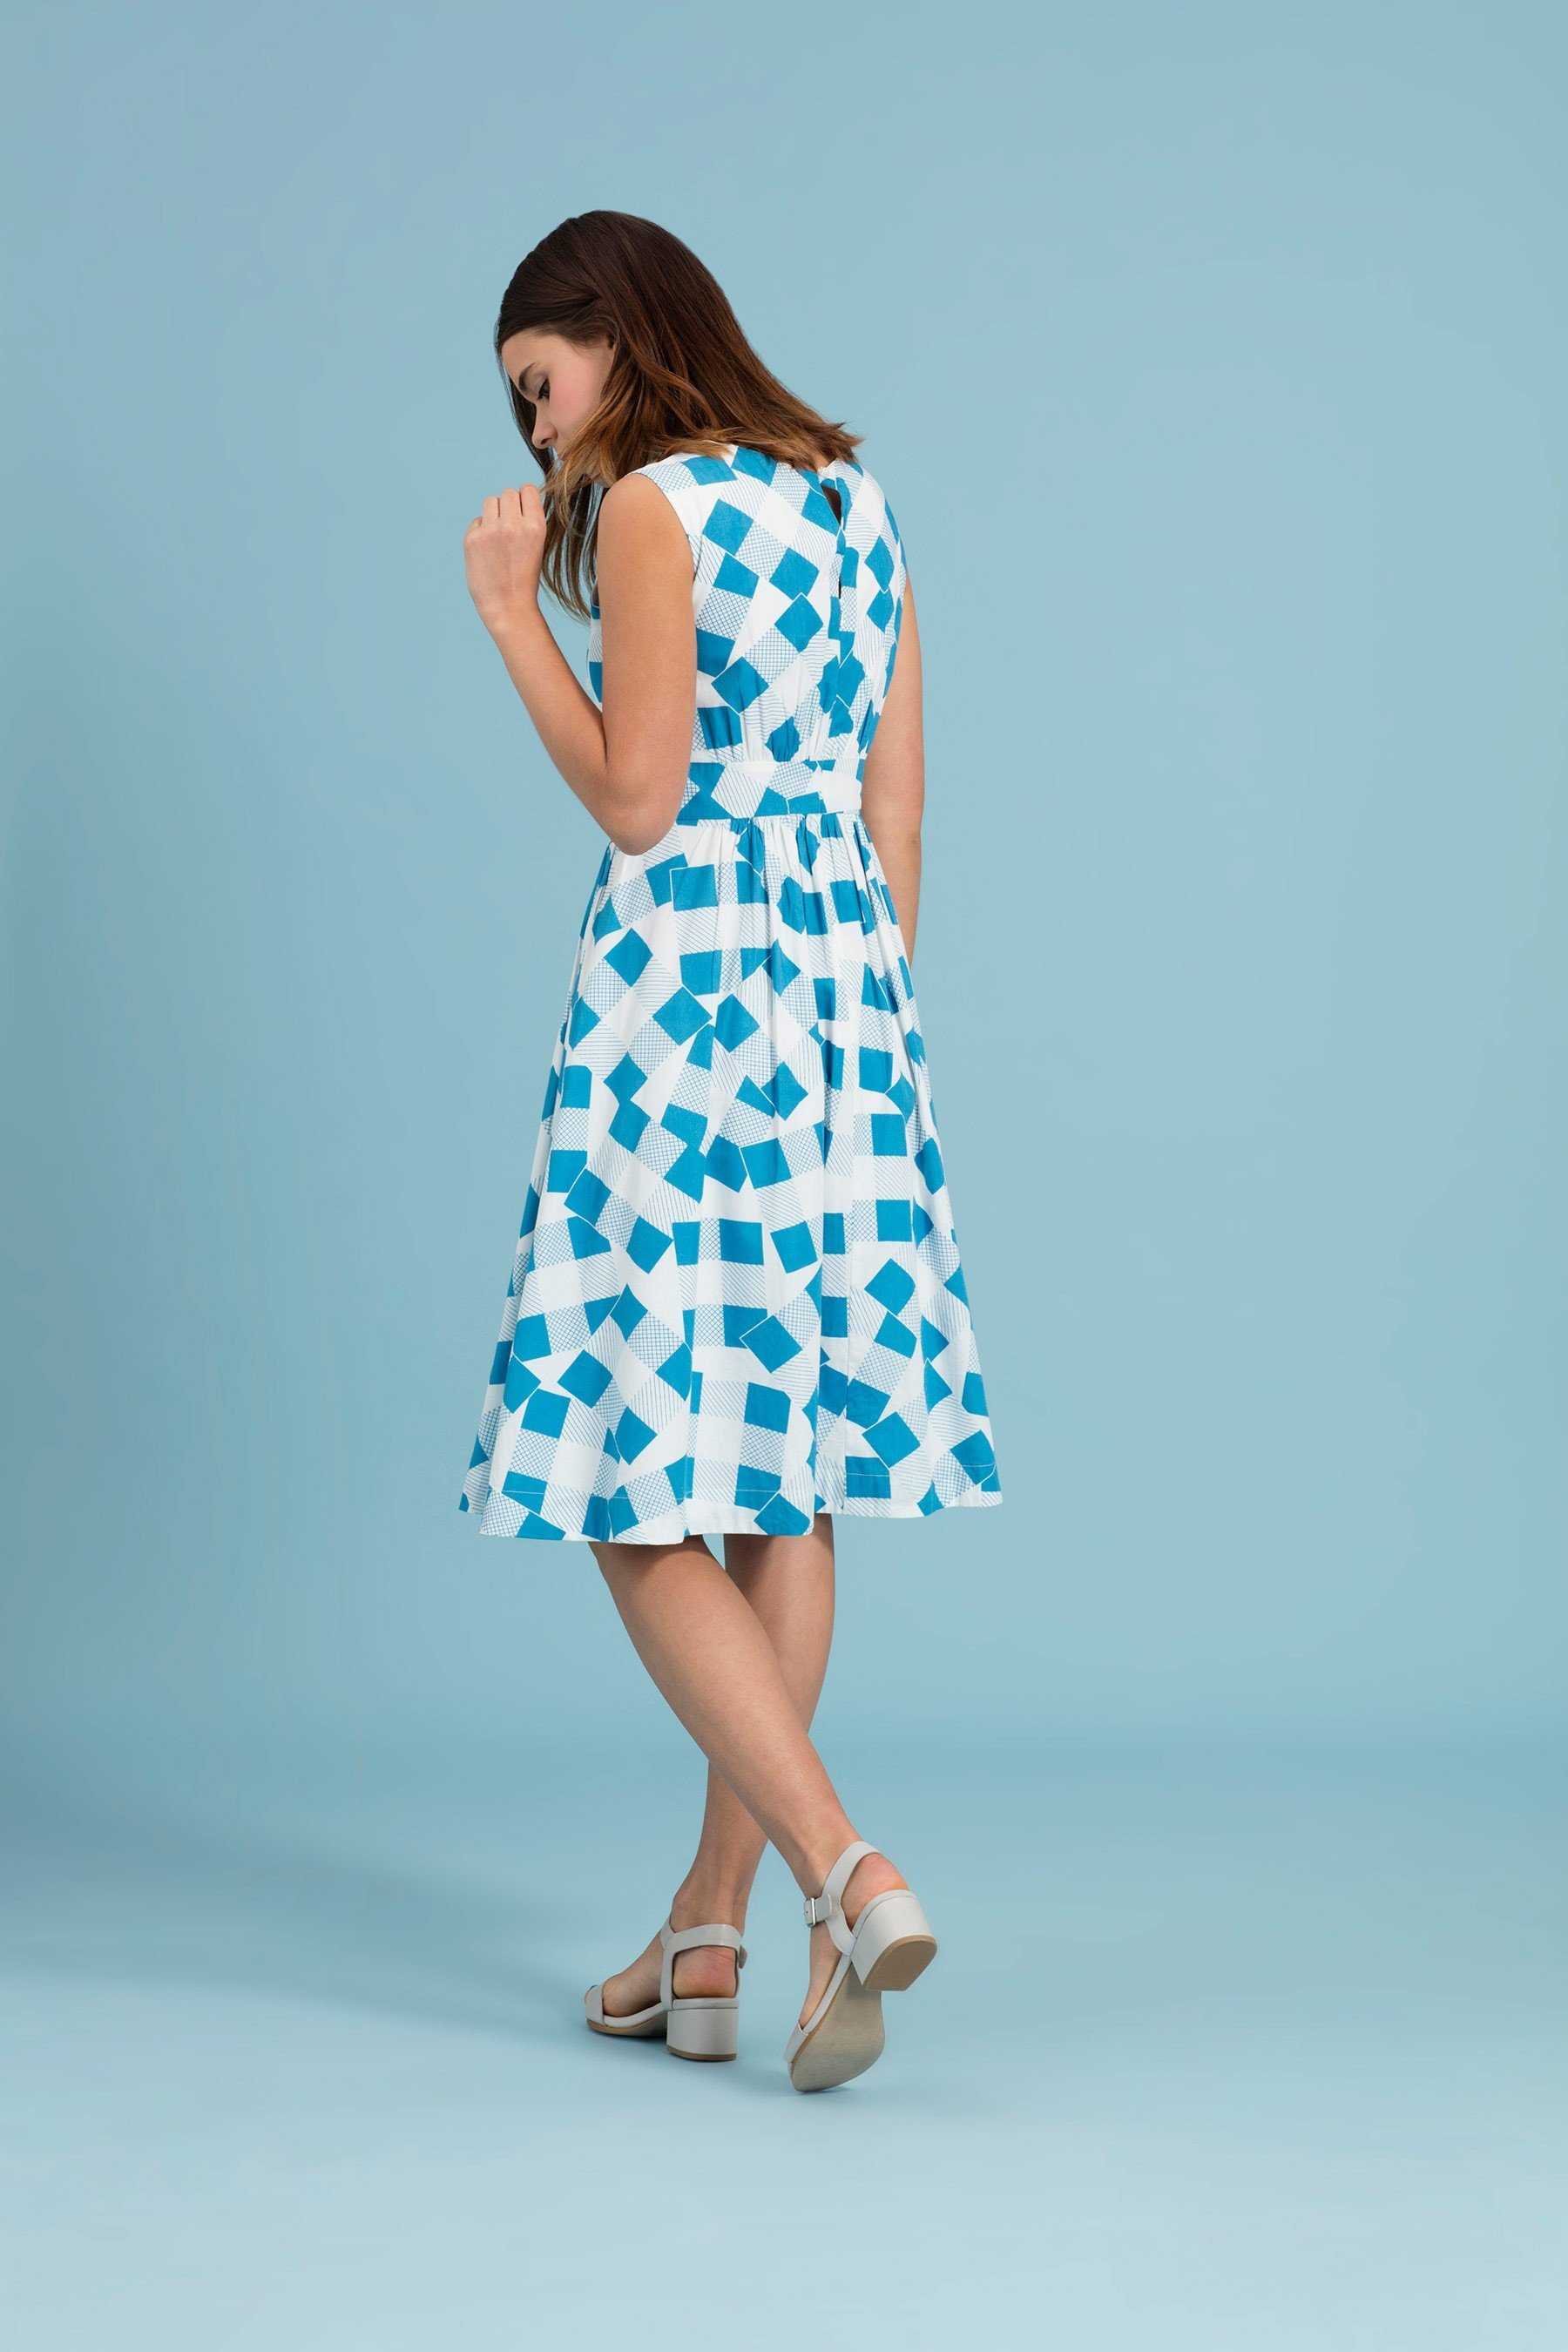 Patchwork Picnic Dress - BouChic